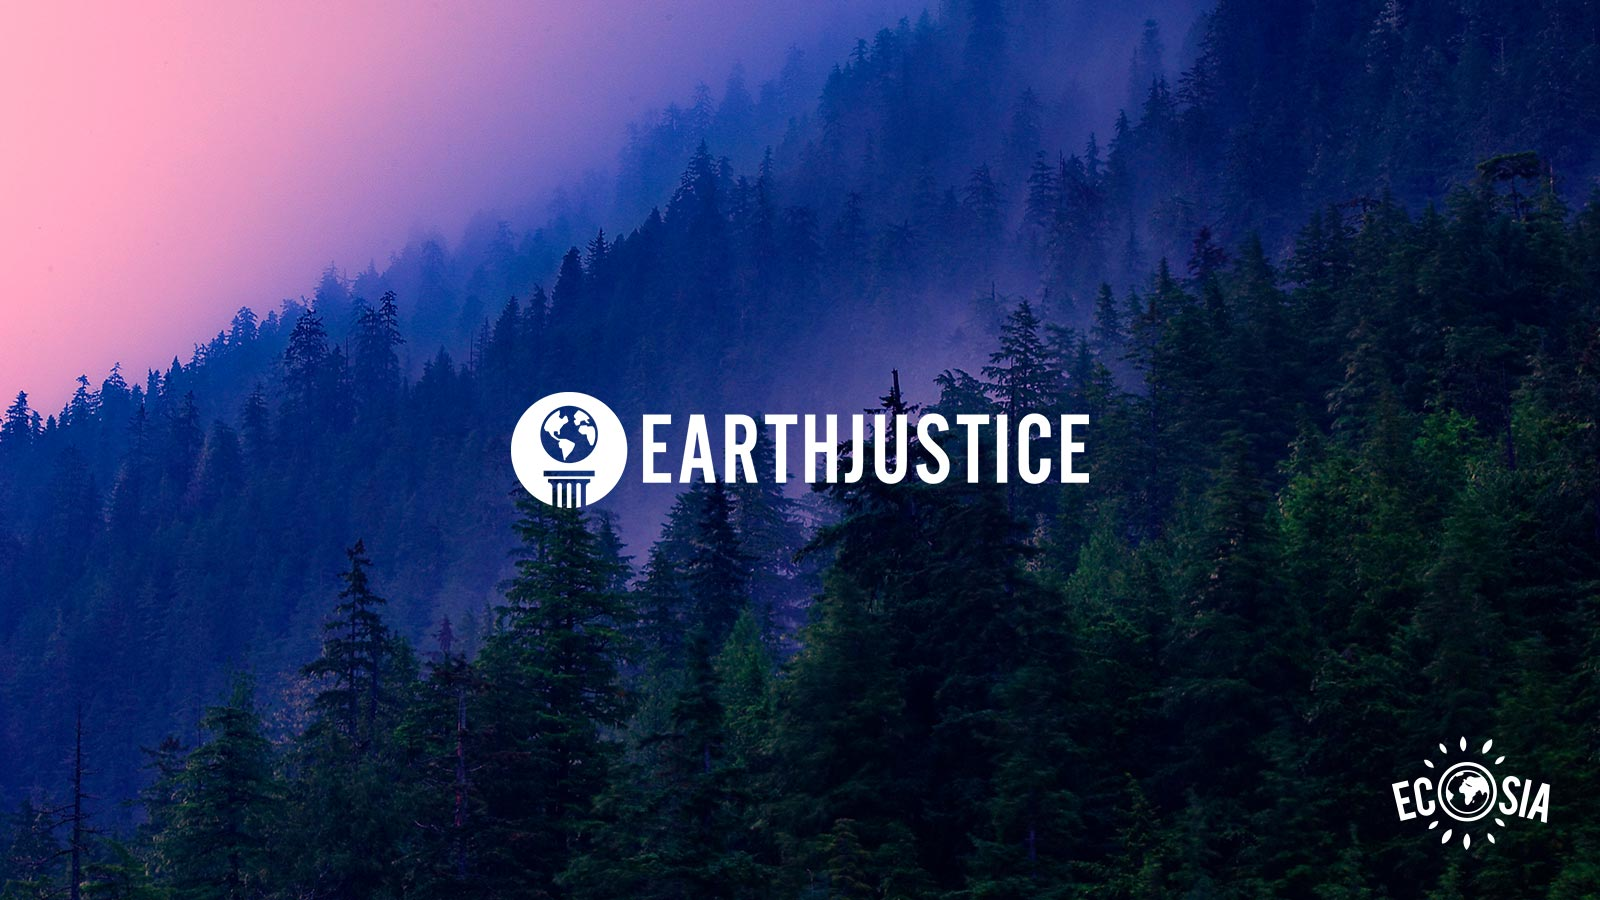 Your voice on climate counts: revenue from all US searches goes towards Earthjustice until polls close